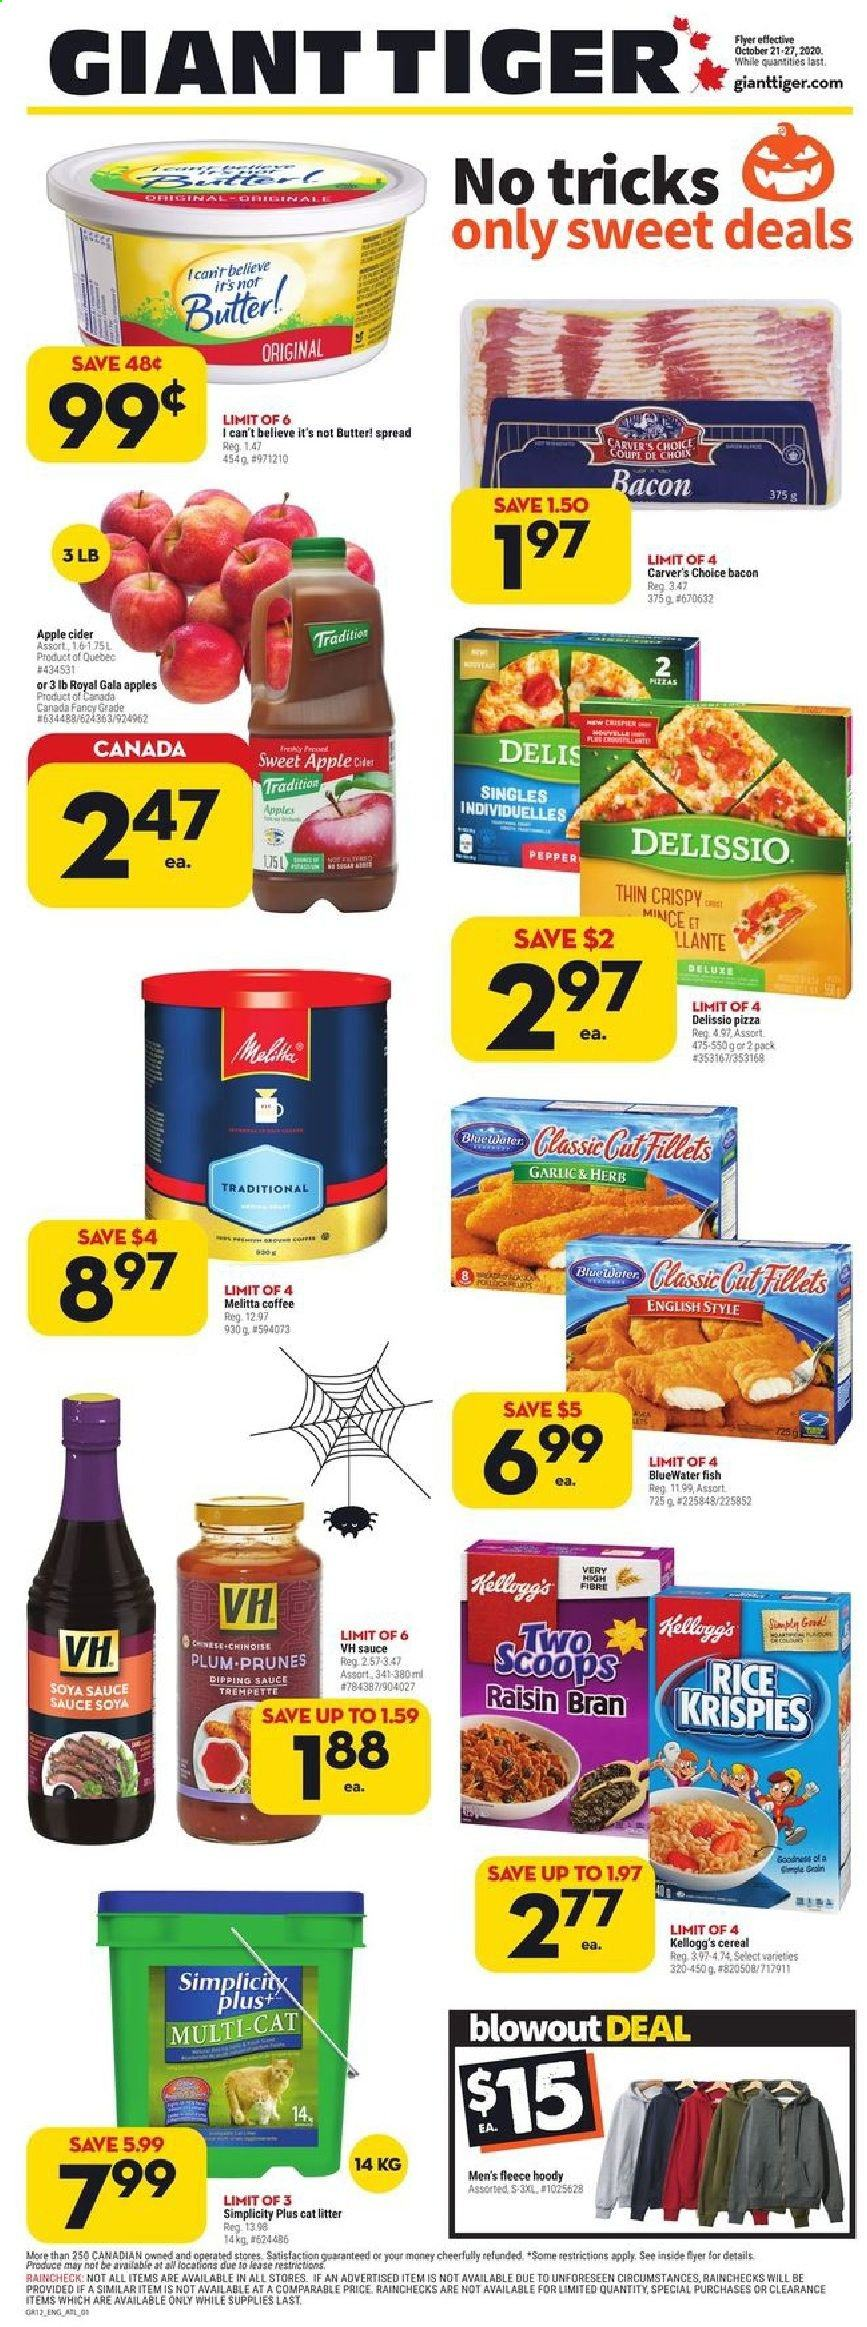 Giant Tiger Flyer - October 21, 2020 - October 27, 2020 - Sales products - apple cider, bacon, bran, butter, cat litter, cereals, coffee, gala apples, garlic, litter, rice, soya sauce, tiger, pizza, prunes, pepper, cereal, herb, sauce, prune, kellogg's, sauce soya, fish, herbs. Page 1.